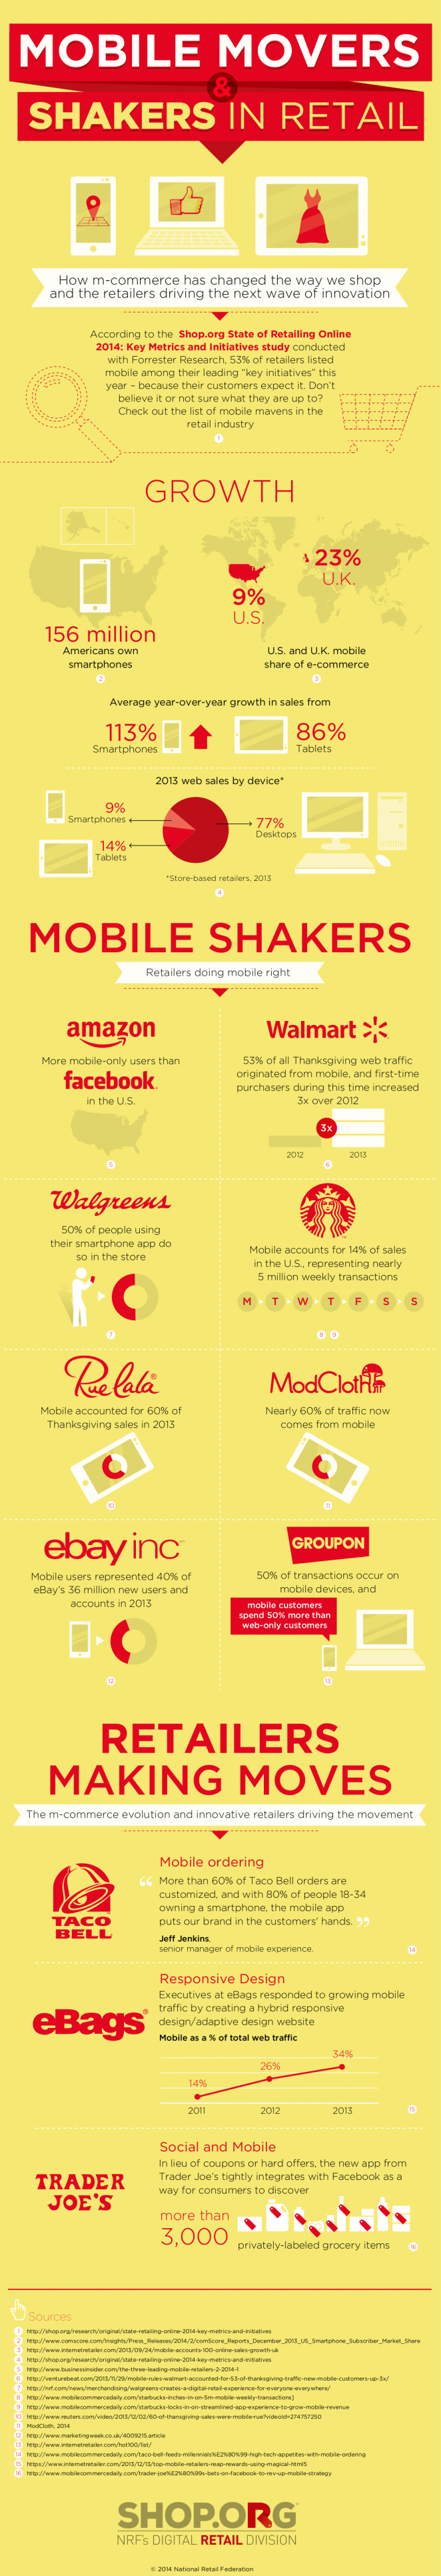 INFOGRAPHIC - MOBILE MOVERS AND SHAKERS IN RETAIL